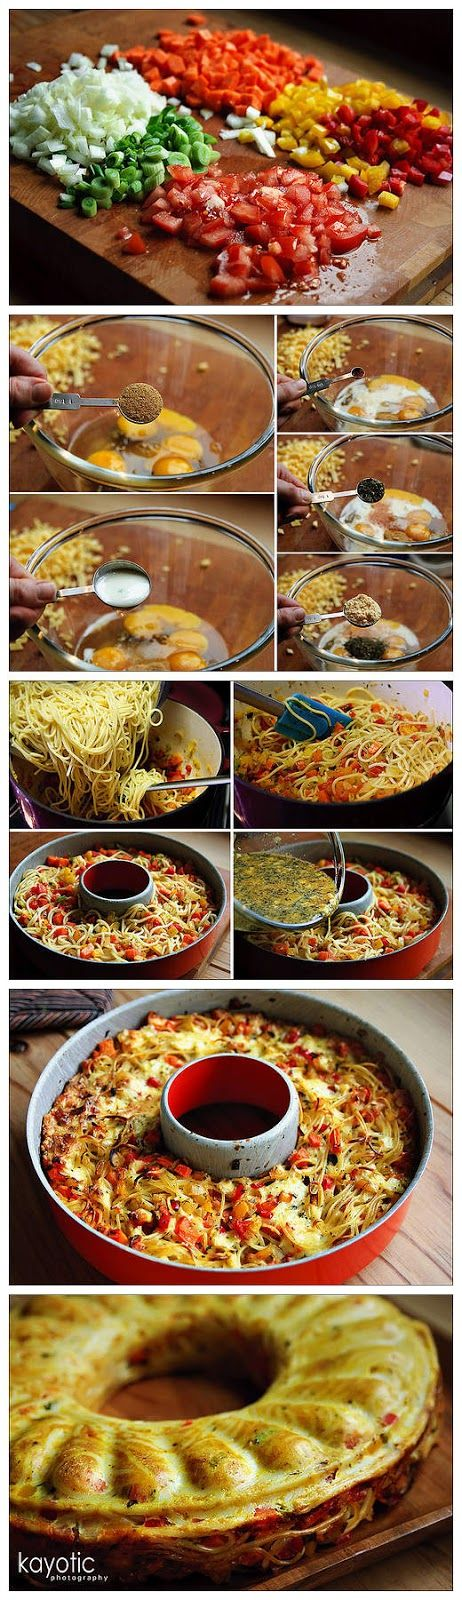 Ingredients:    10 oz spaghetti  7 oz cheese  2 bell peppers  1 large onion  1 large carrot  2 spring onions  2 tomatoes  4 eggs  1 tsp l...